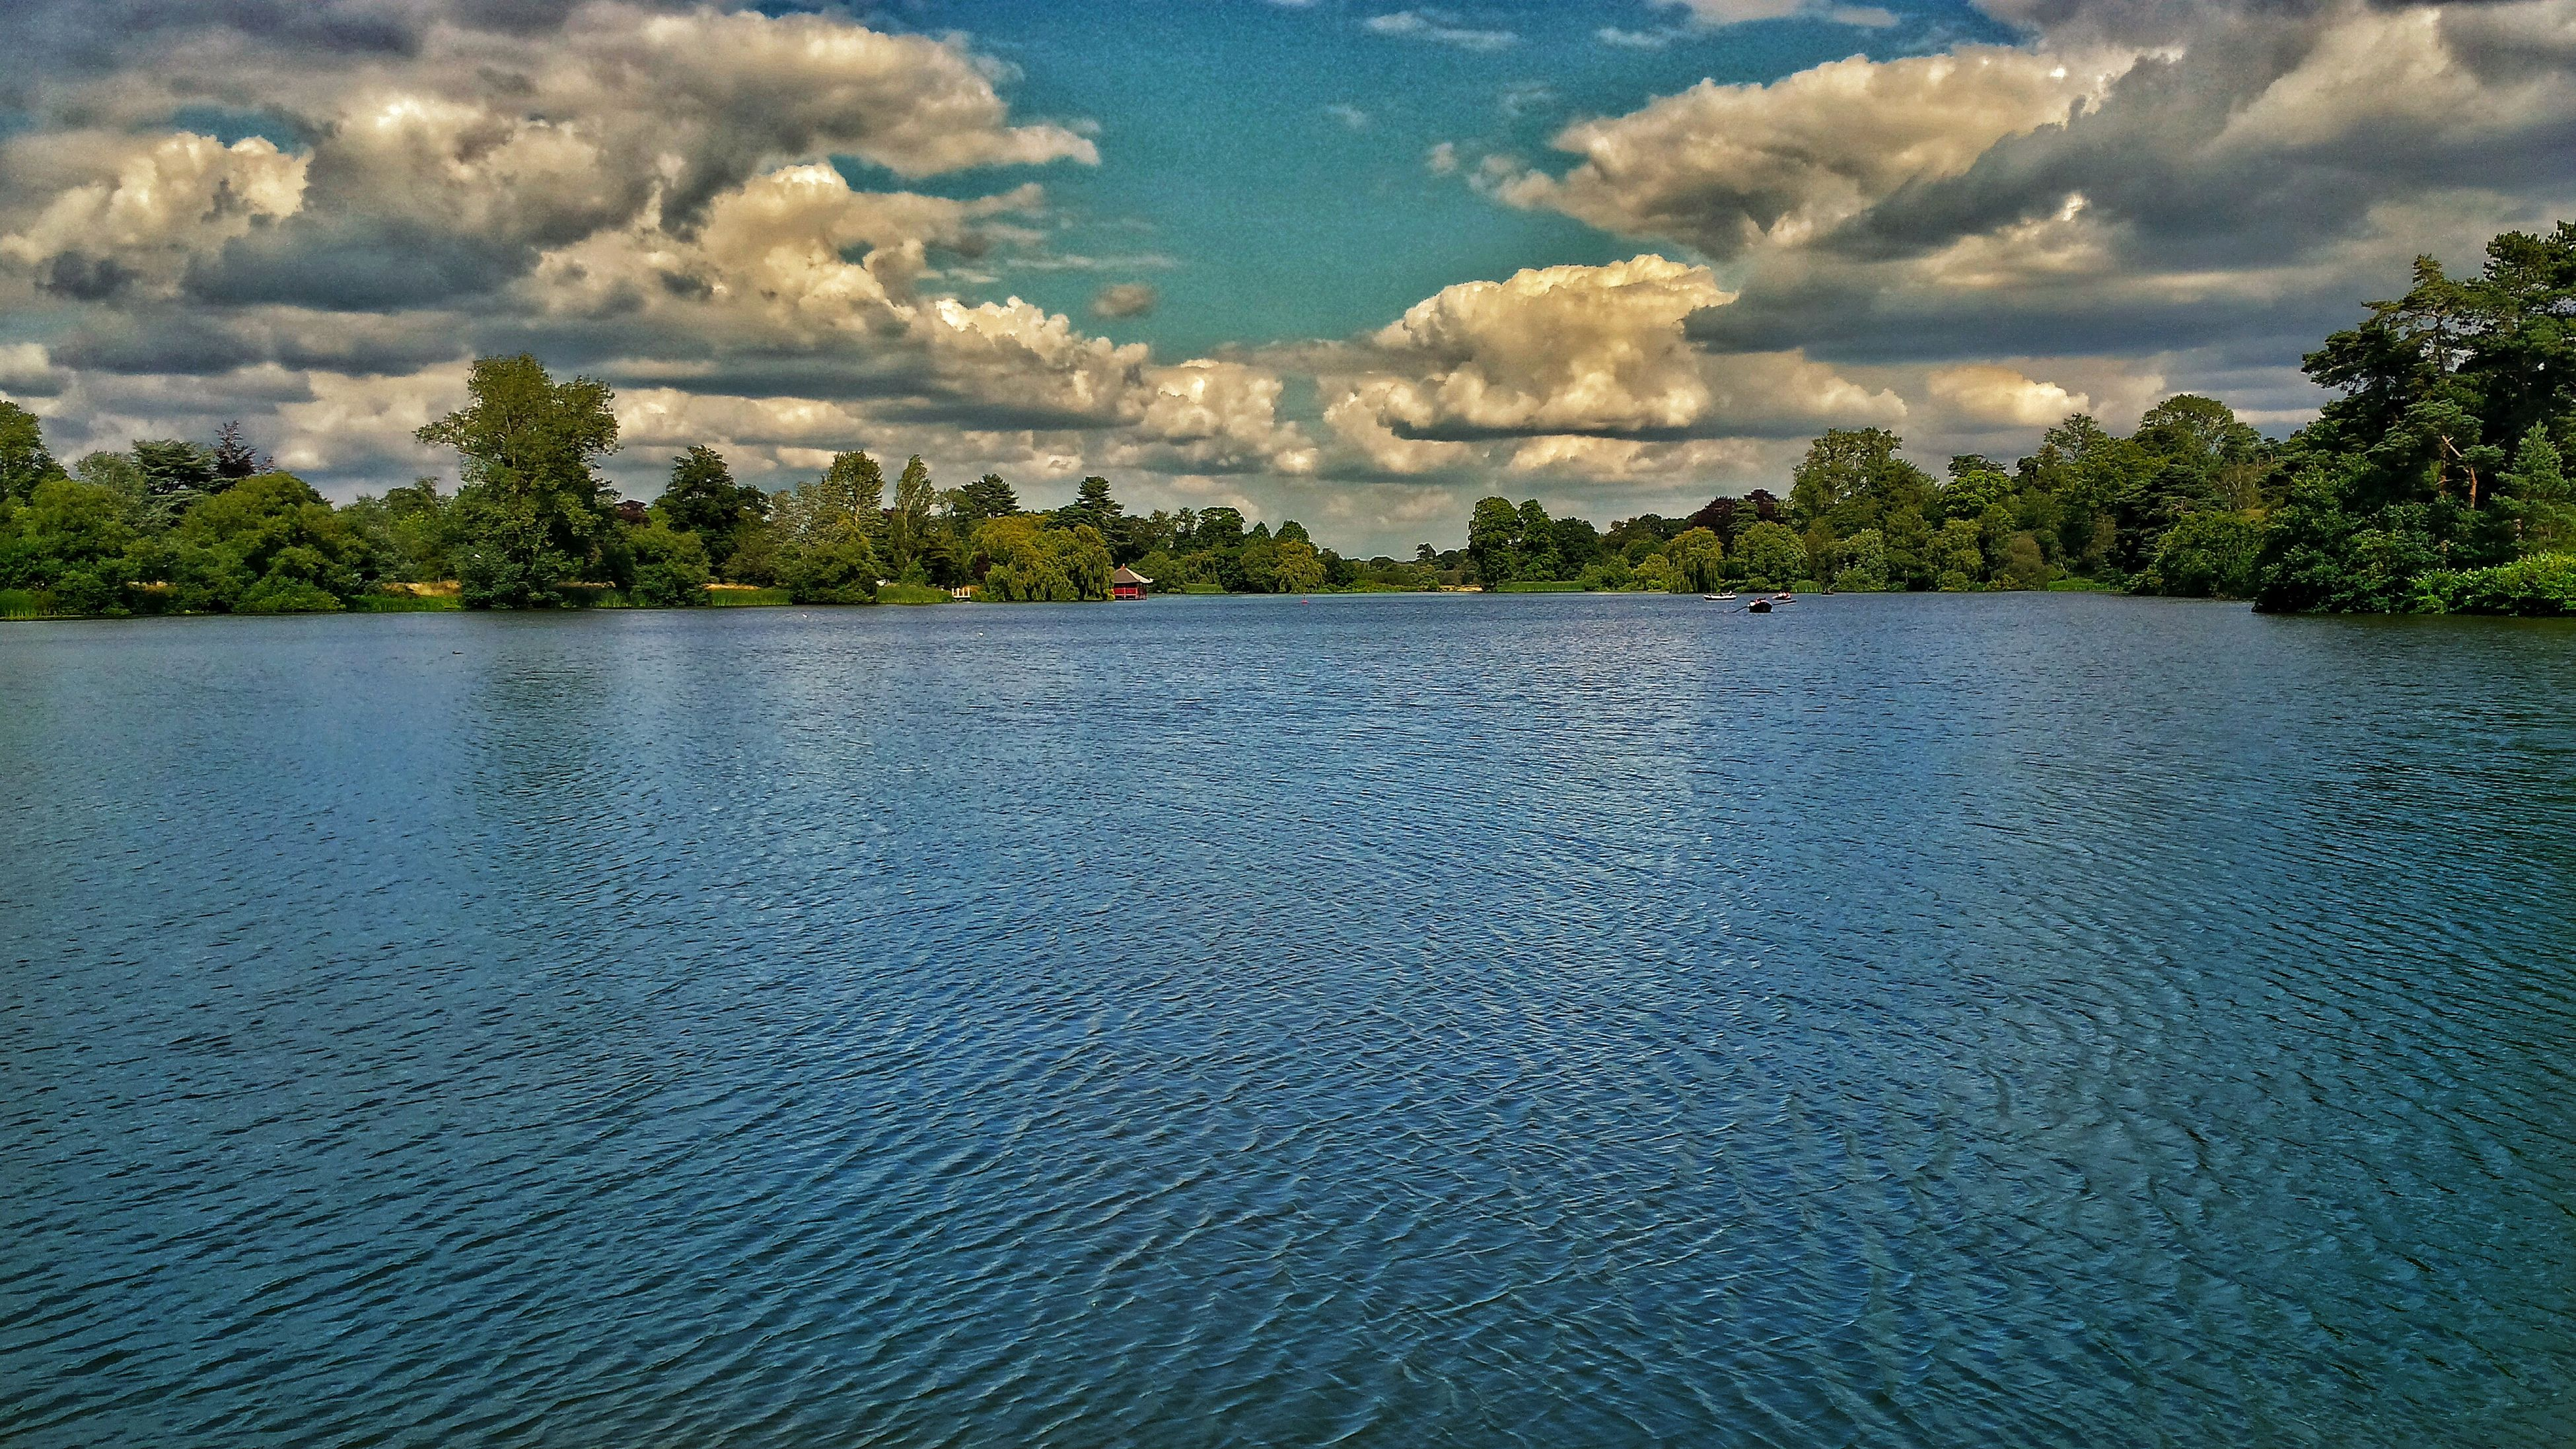 reflection, water, tree, sky, cloud - sky, nature, lake, scenics, outdoors, no people, beauty in nature, reflection lake, day